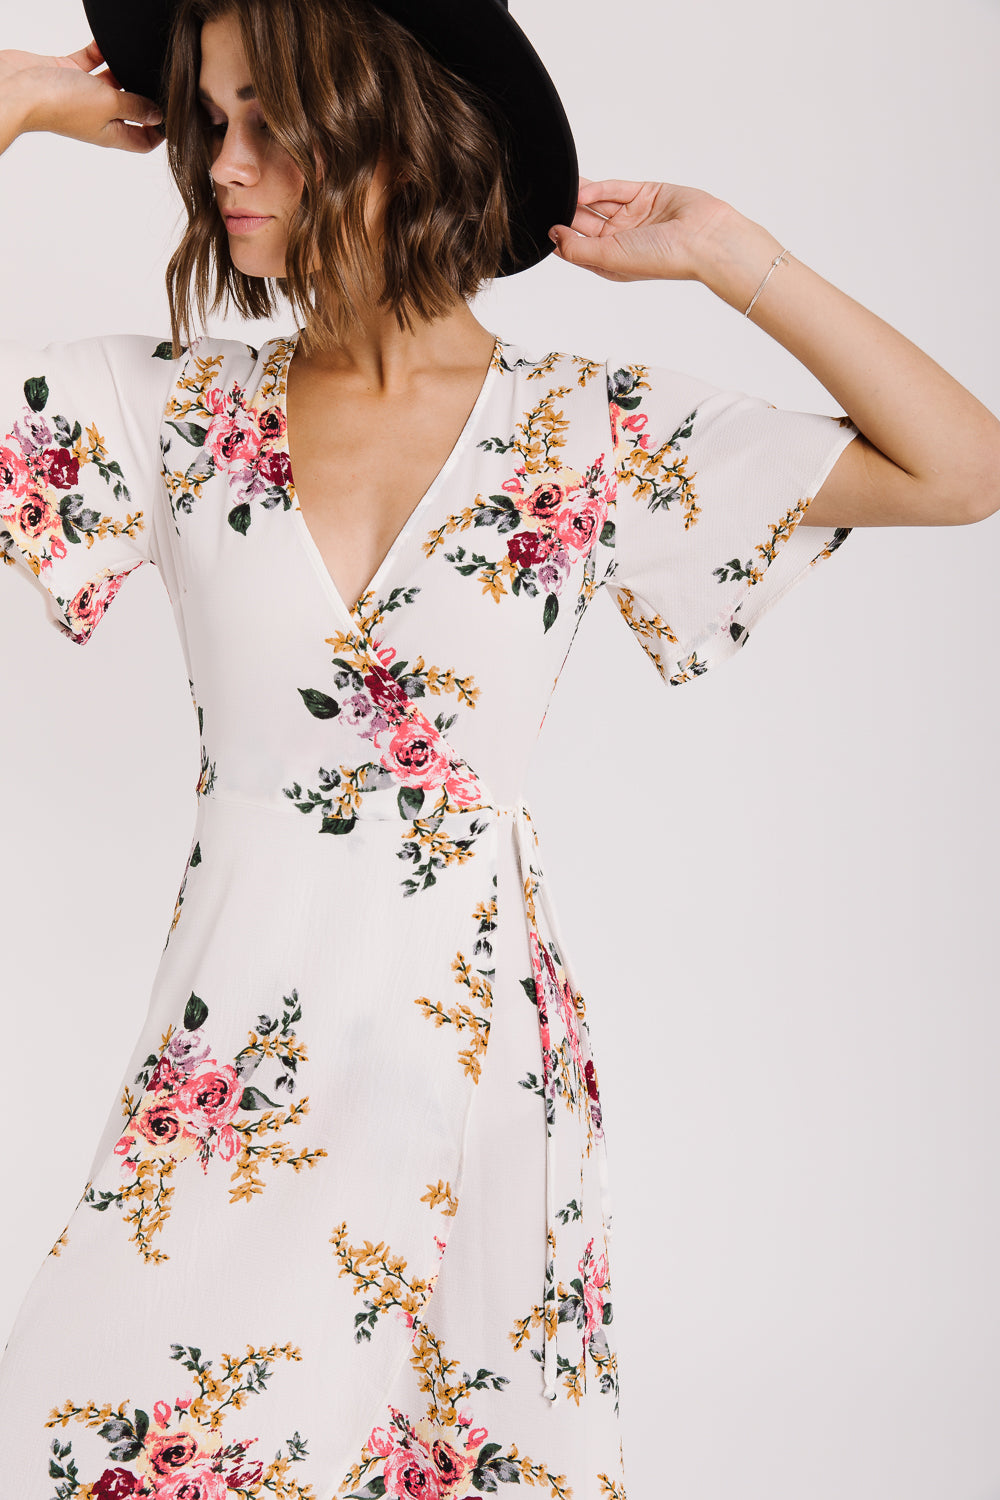 The Kailua Floral Wrap Dress in Ivory